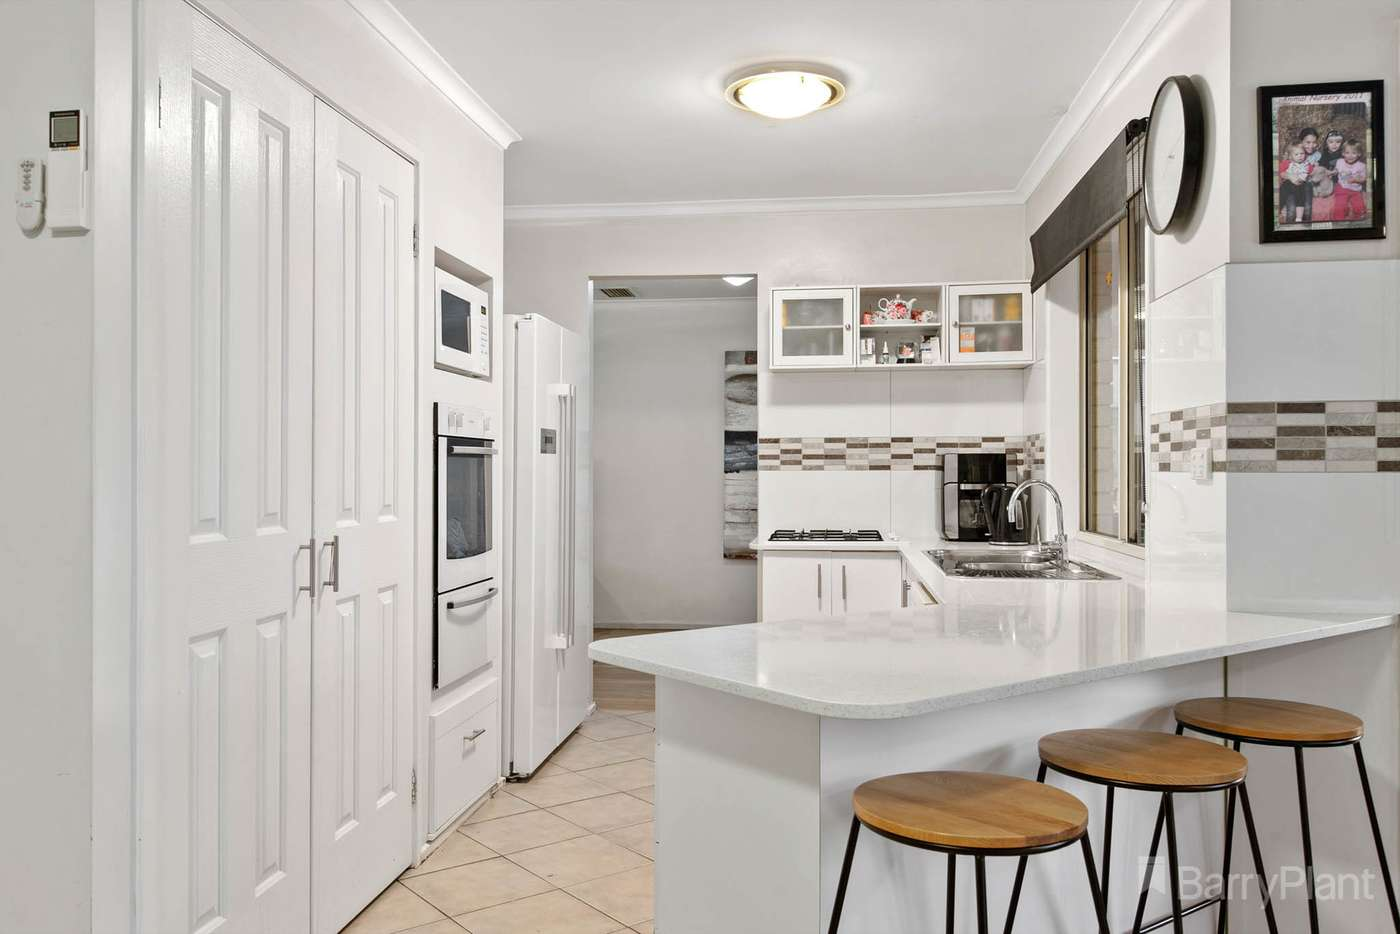 Fifth view of Homely house listing, 26 Terrapin Drive, Narre Warren South VIC 3805